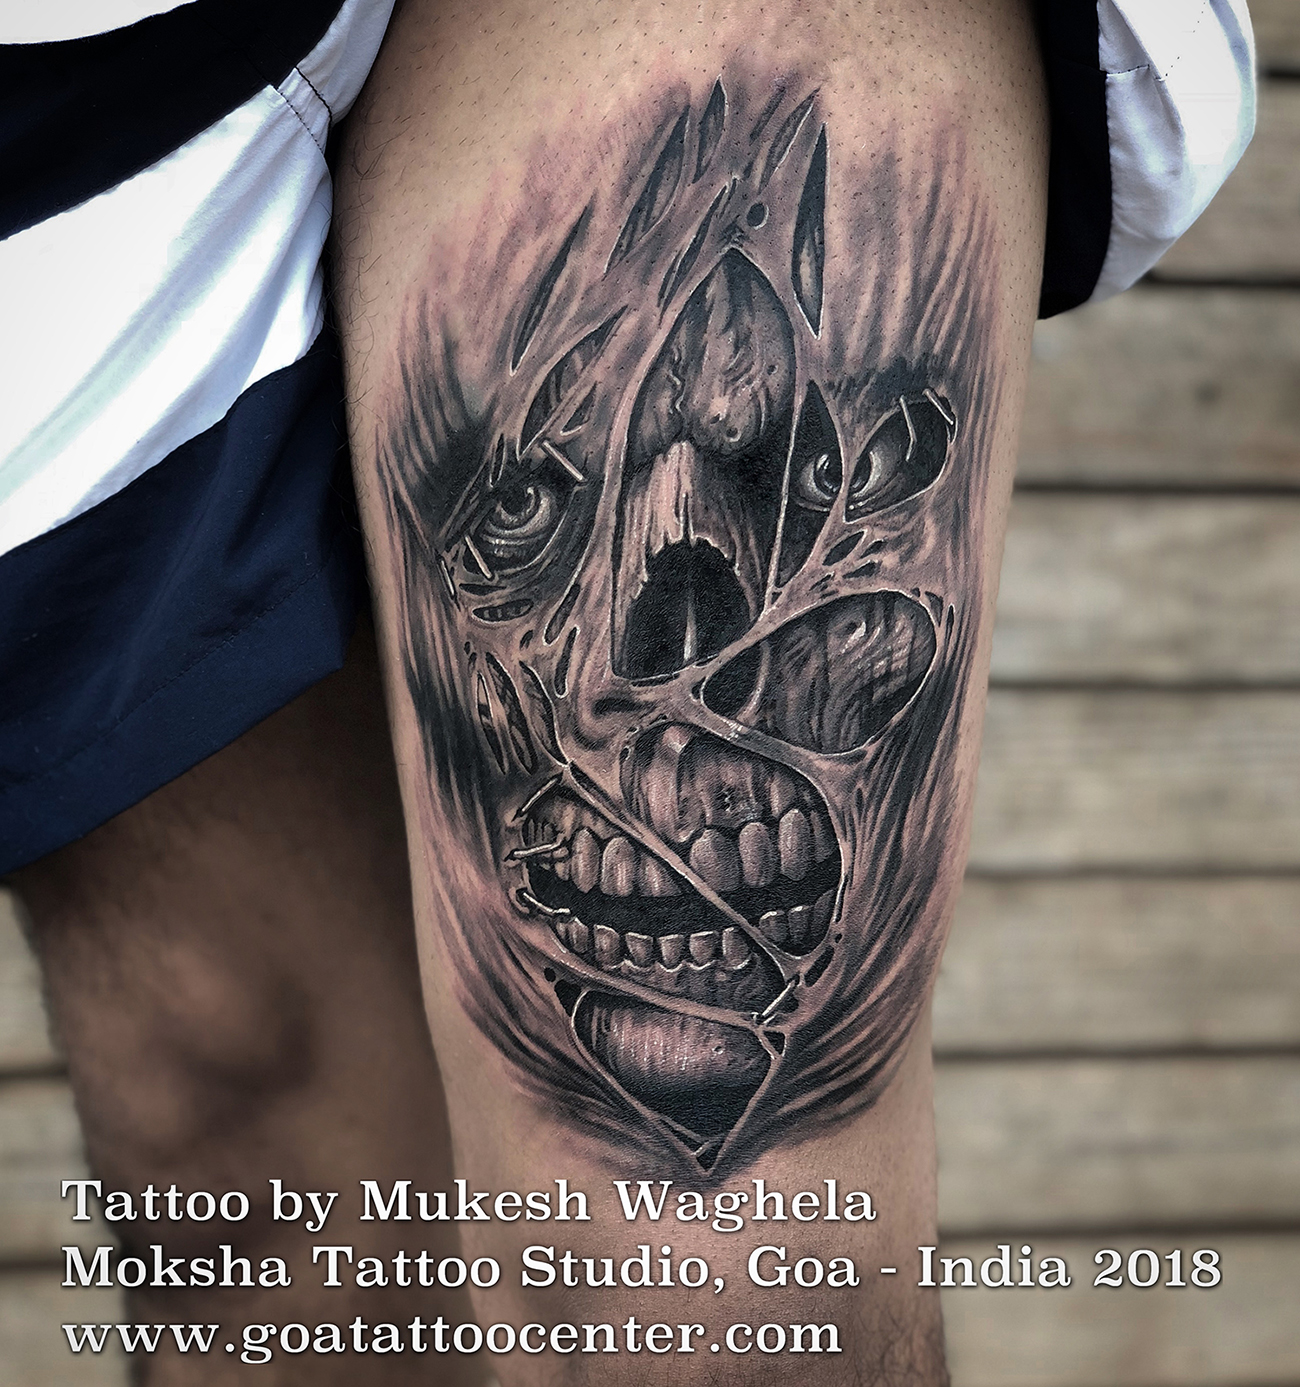 28a127e82 Evil Skull Tattoo - Done By Mukesh Waghela At Moksha Tattoo Studio Goa  India.Moksha Tattoo Studio is the Professional, Hygienic and Safe Tattoo  Studio in ...